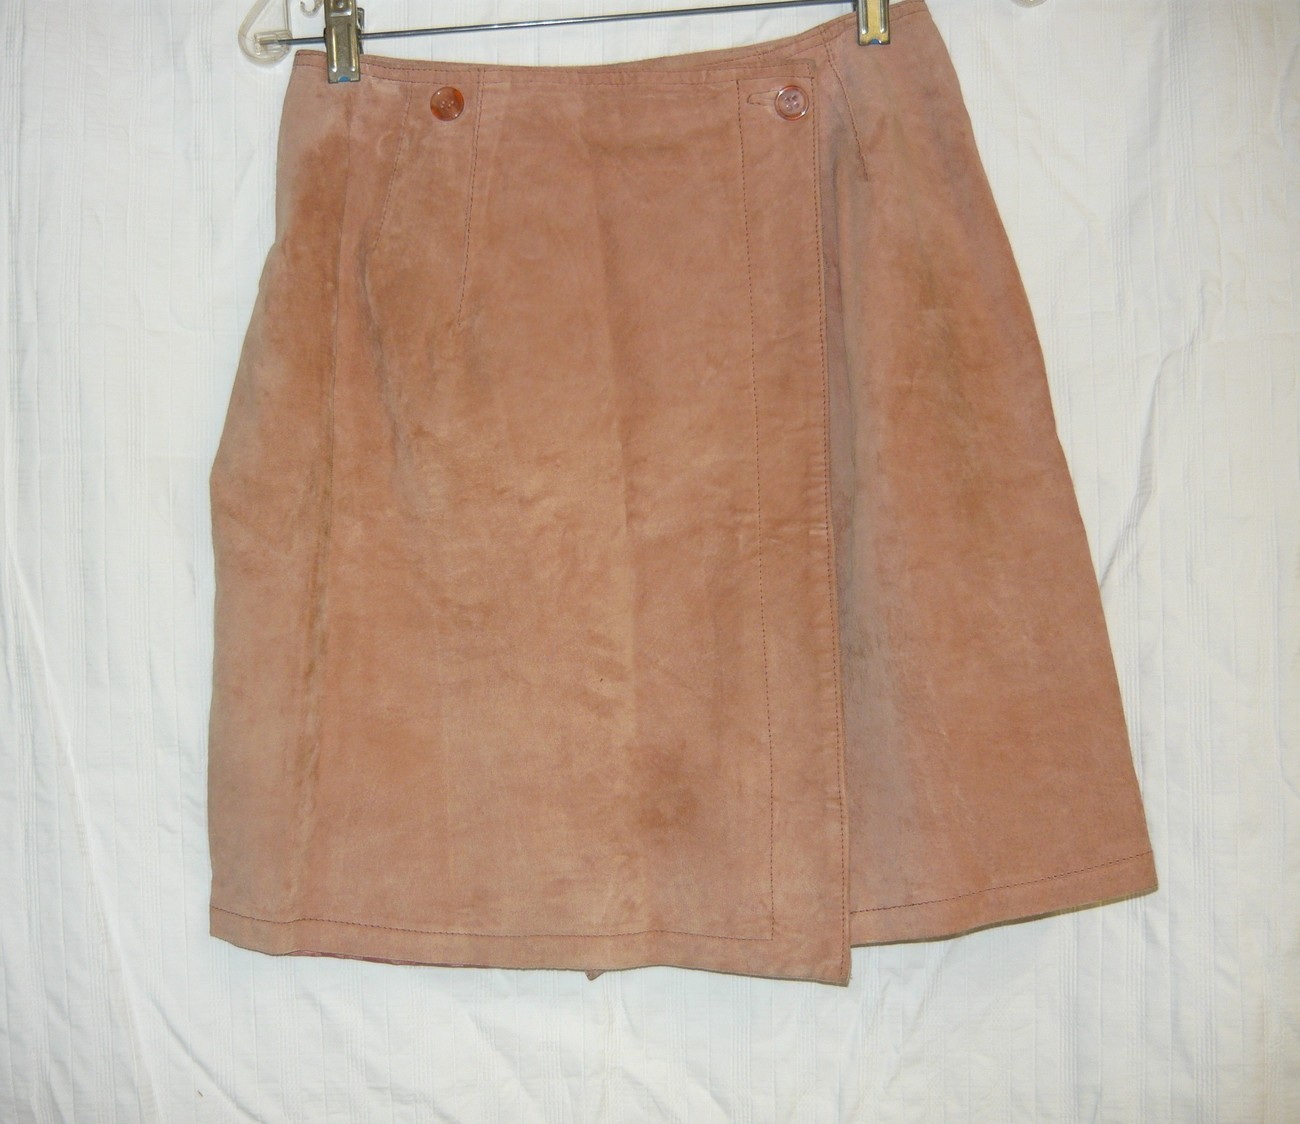 Primary image for Tan Lined Suede Wrap Mini Skirt-8